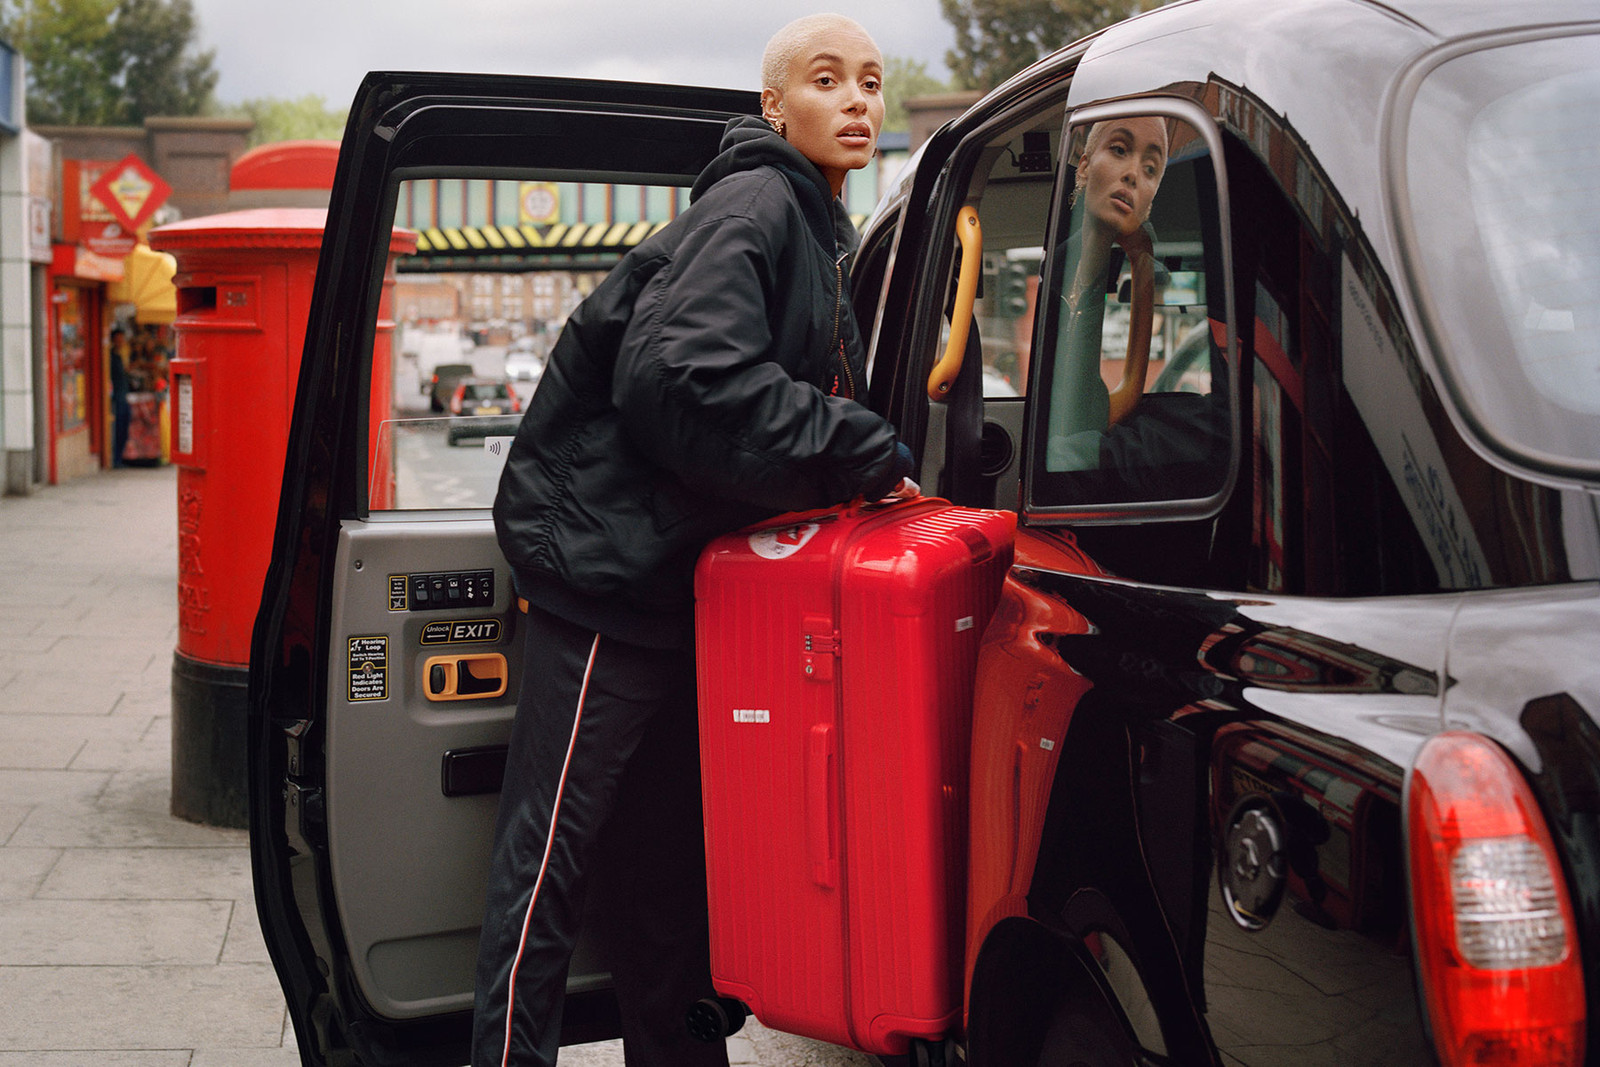 Rimowa campaign 120 year anniversary film movie virgil abloh yoon ahn nobu matsuhisa roger federer adwoa aboah luggage travel suitcase lvmh video